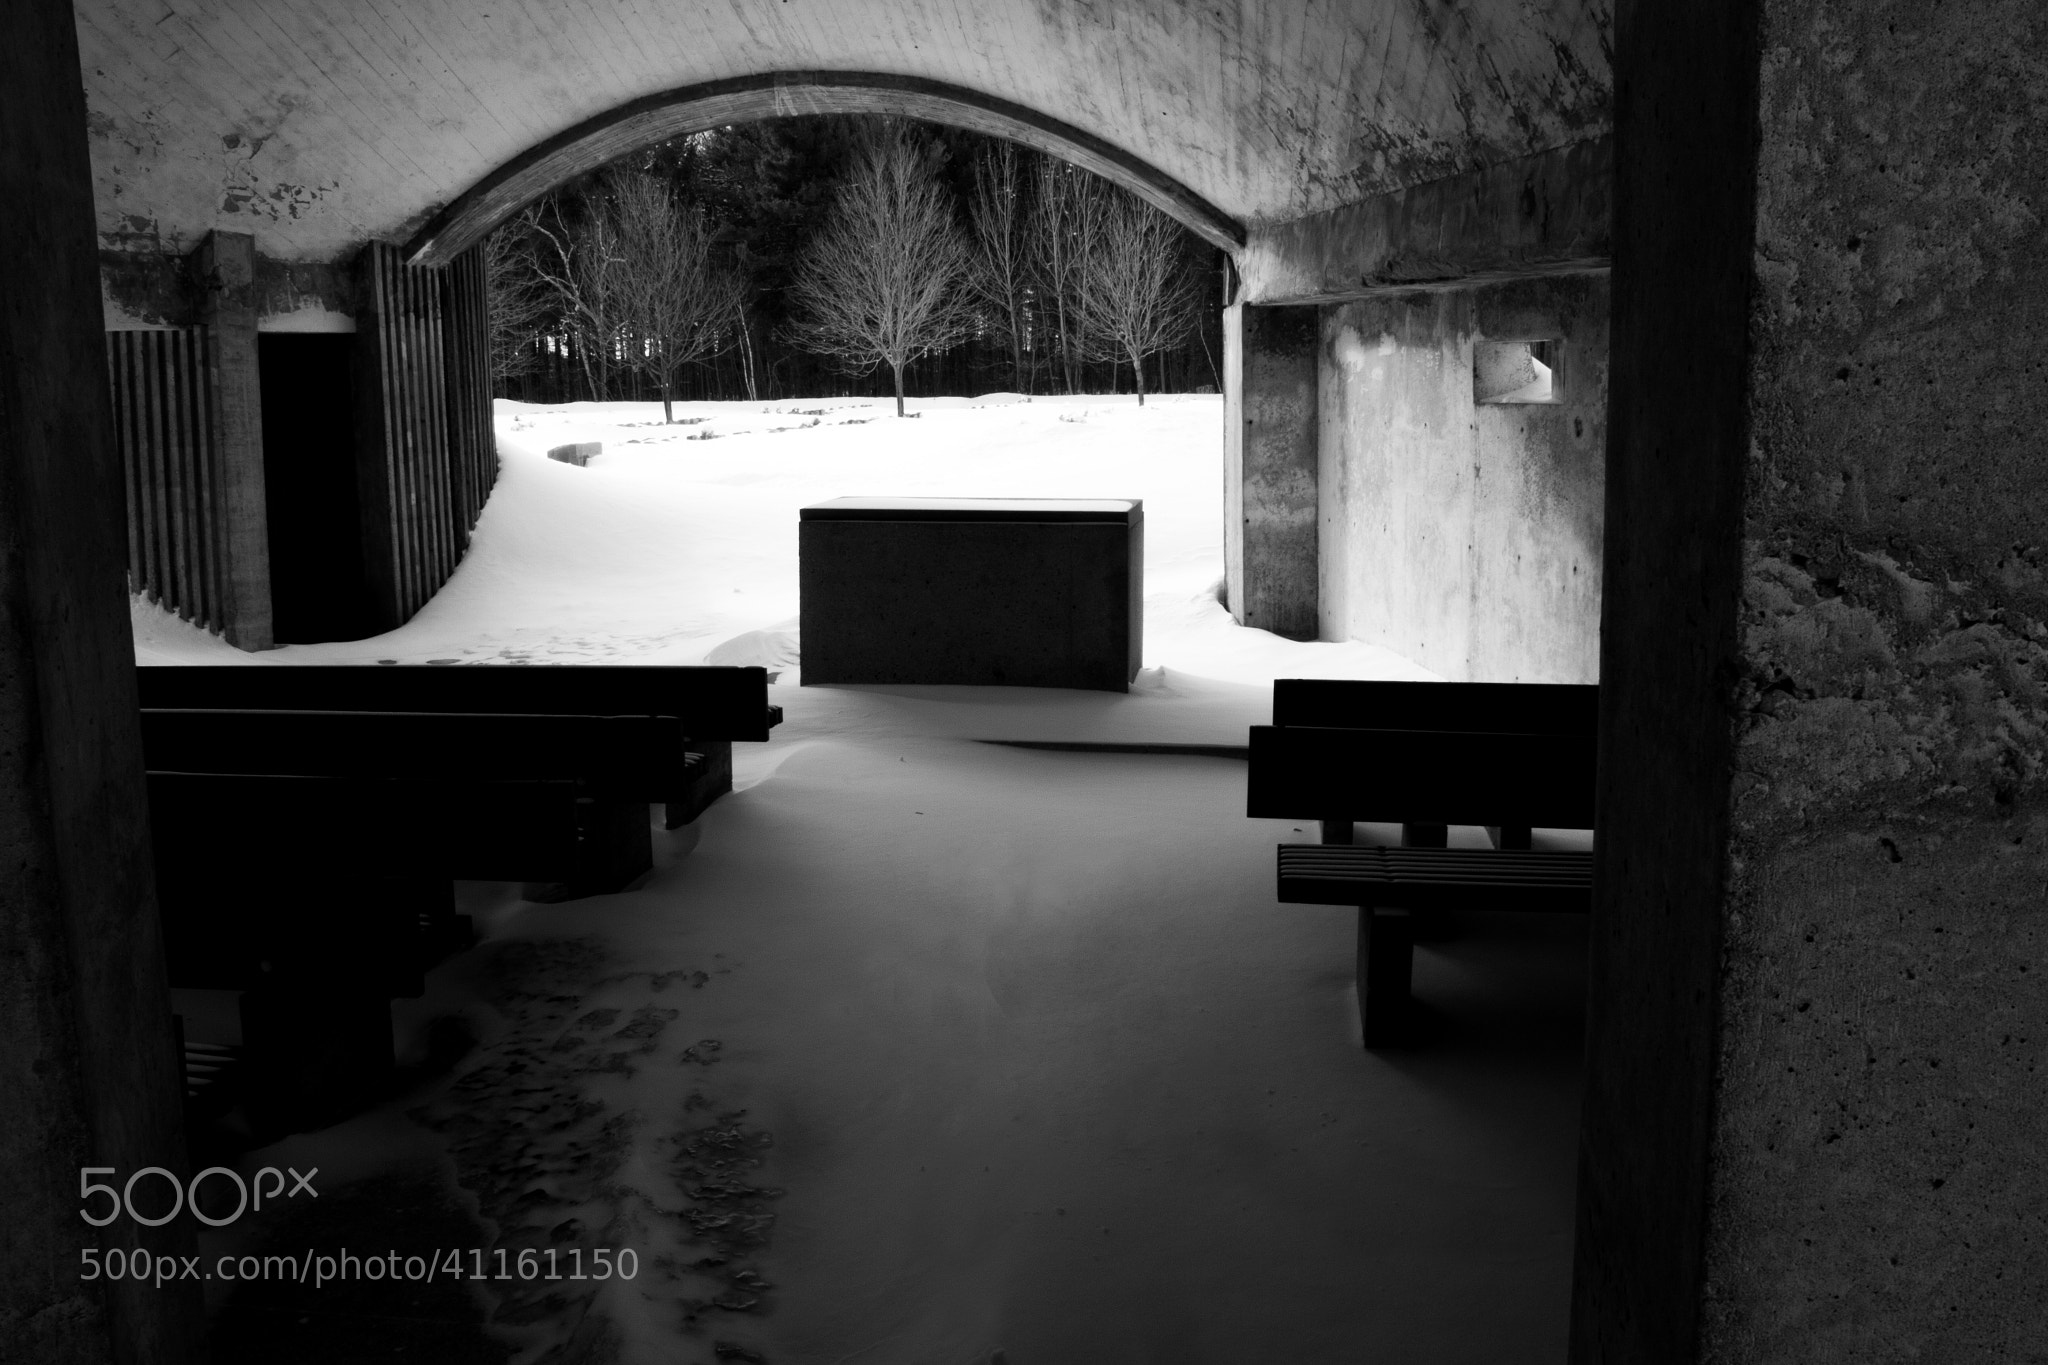 Photograph Religion Nordique by Hugo Champagne on 500px